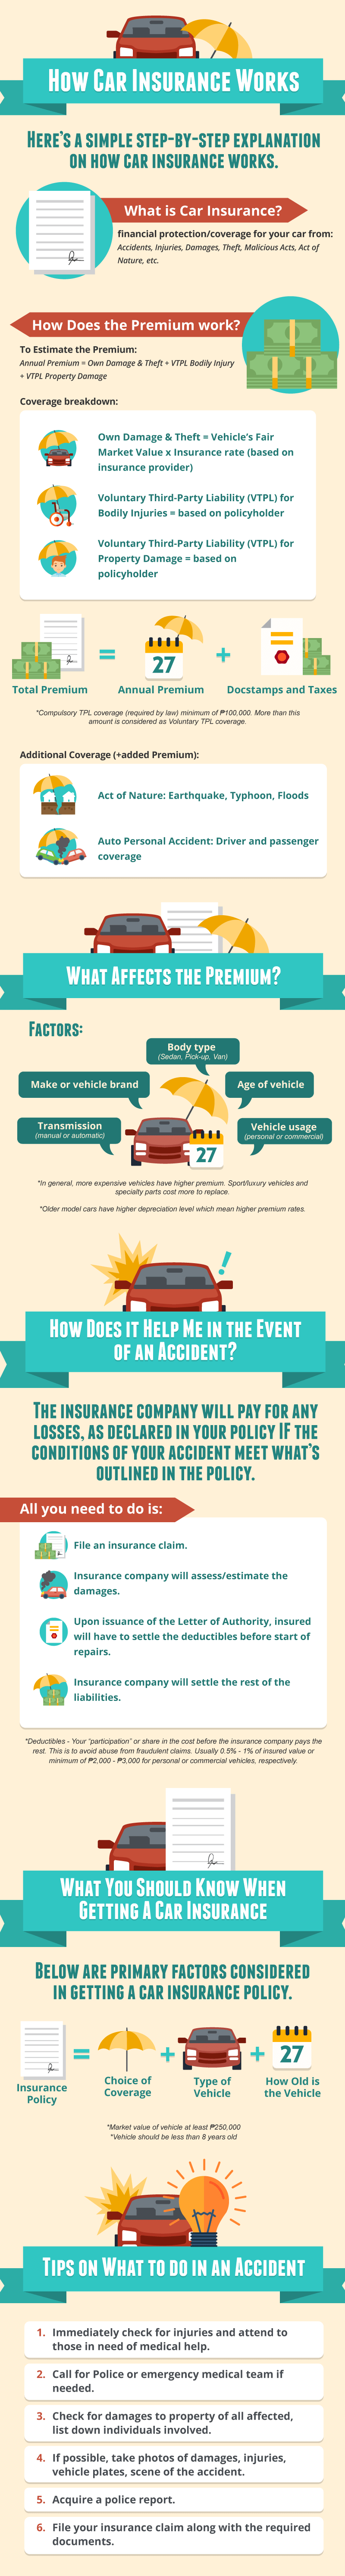 qbe car insurance philippines review